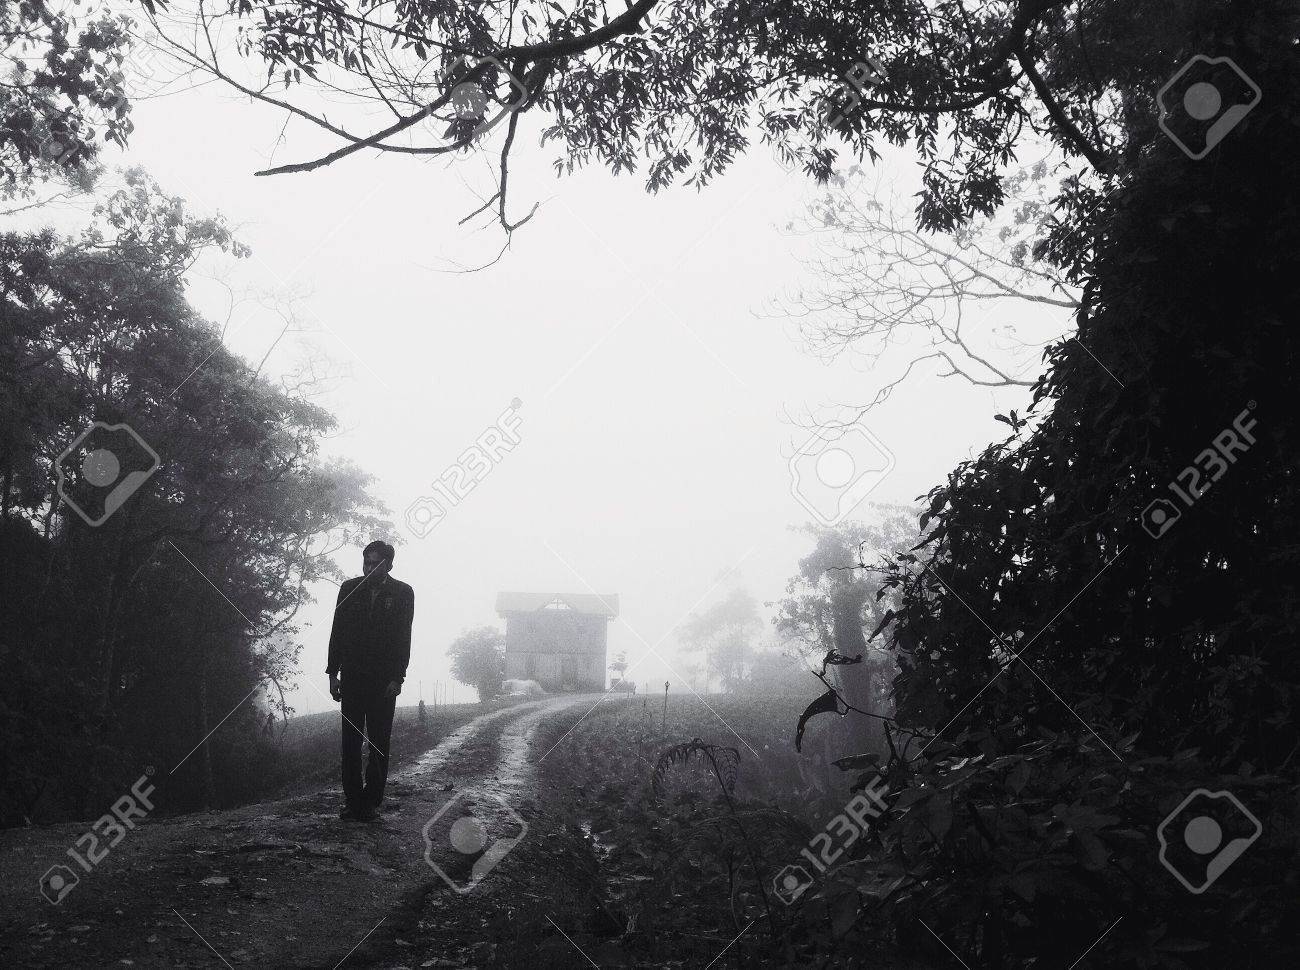 A Man Walking In A Foggy Forest Stock Photo Picture And Royalty Free Image Image 24309998